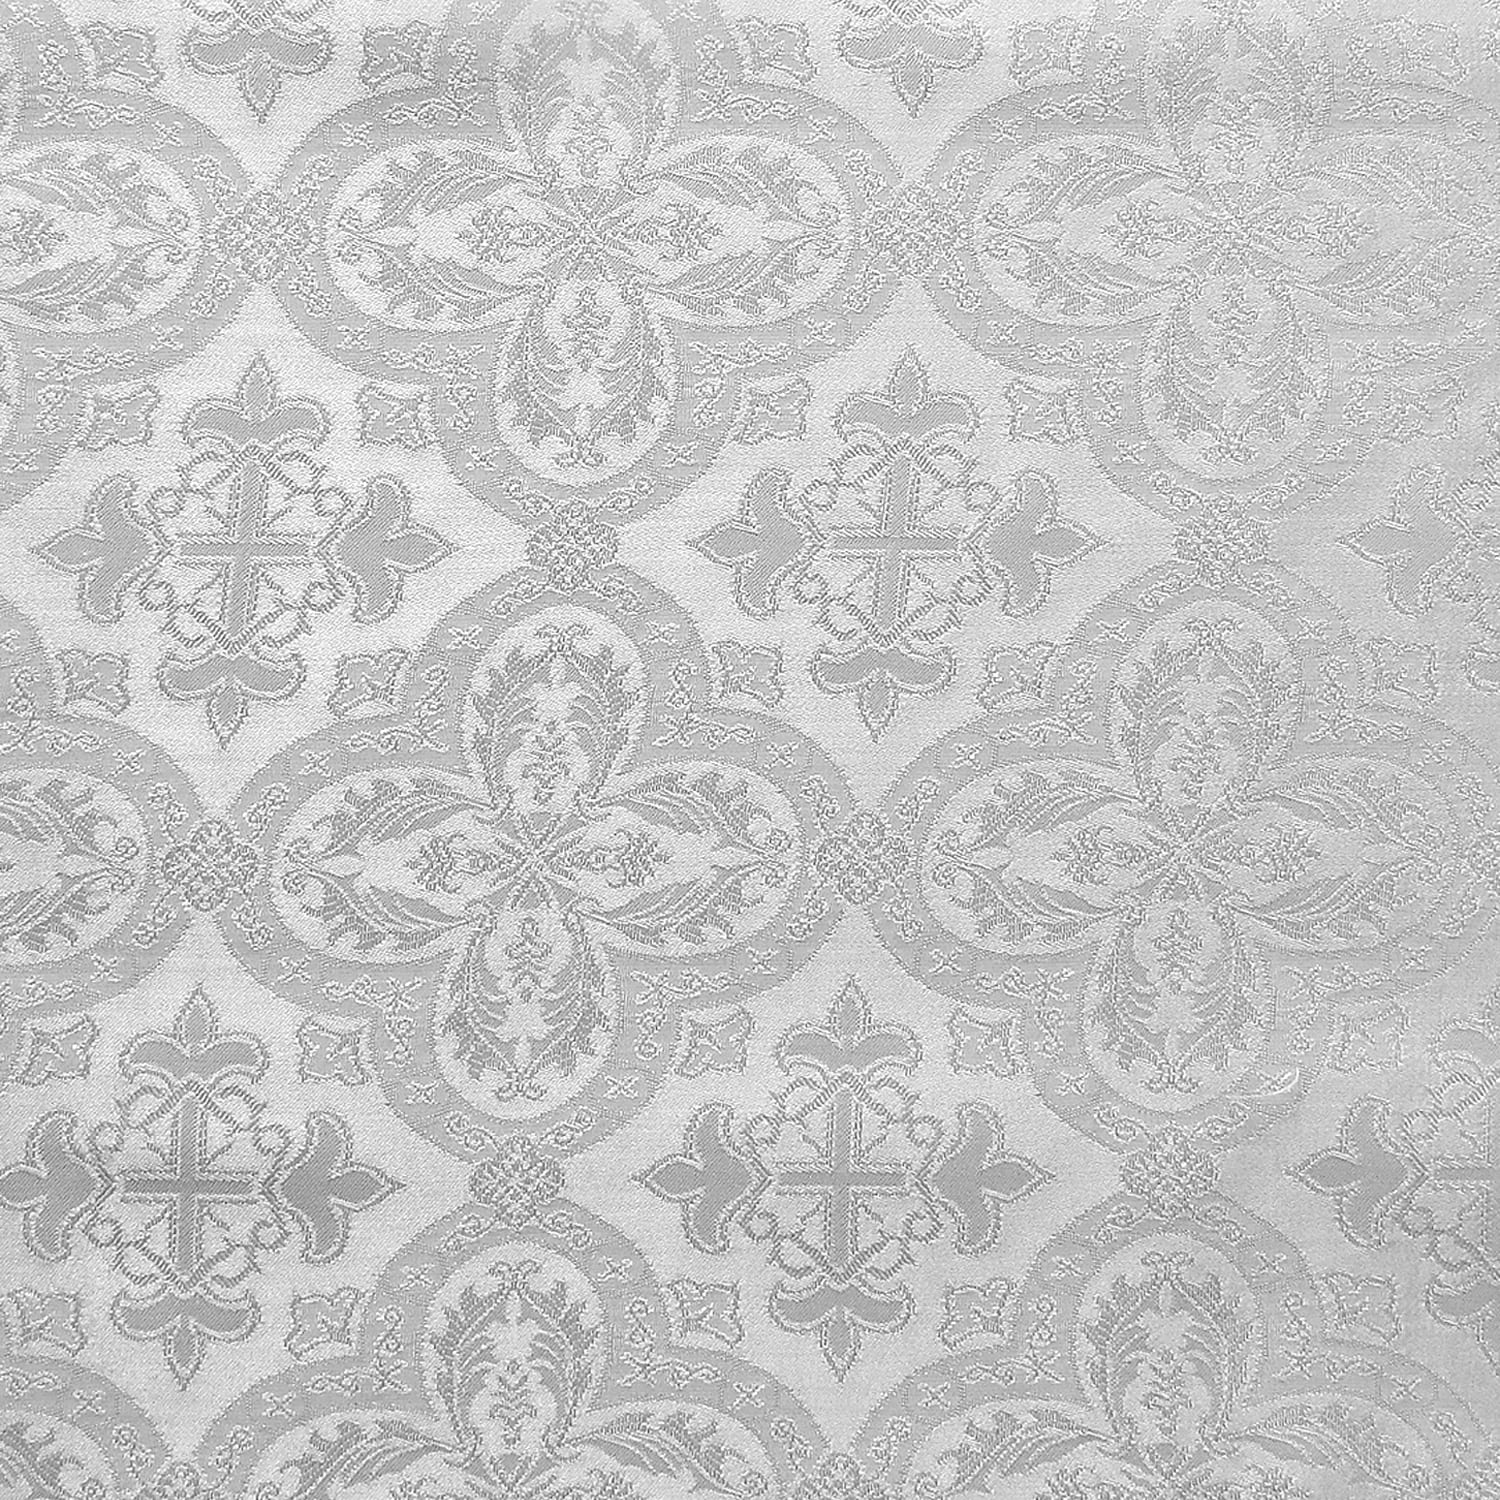 FP721-C1 45 Bright Gold Marbleized Cotton Print Fabric-15 Yards Wholesale by the Bolt